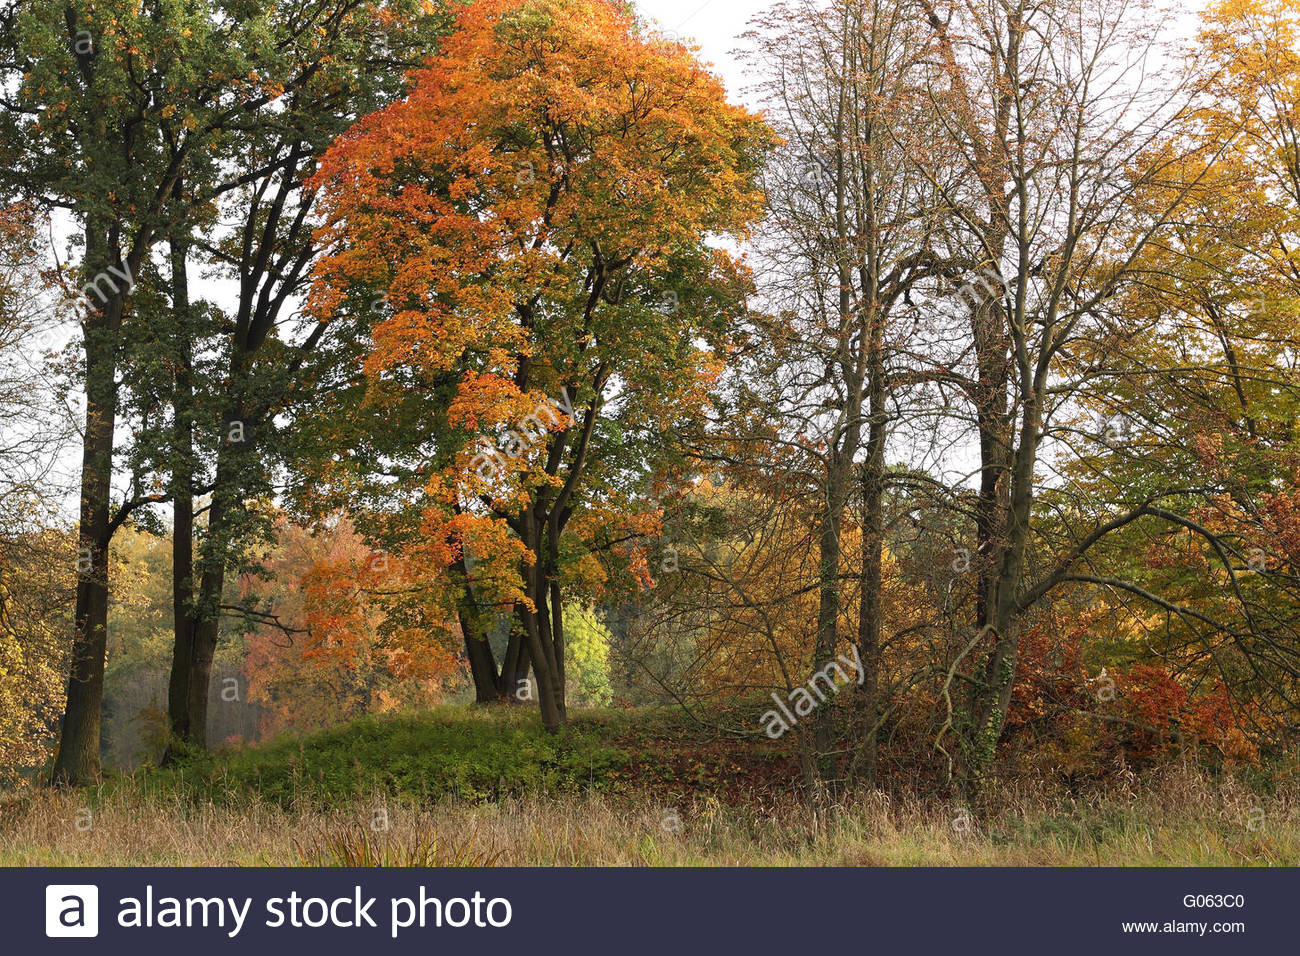 Autumn evening in the park - Stock Image